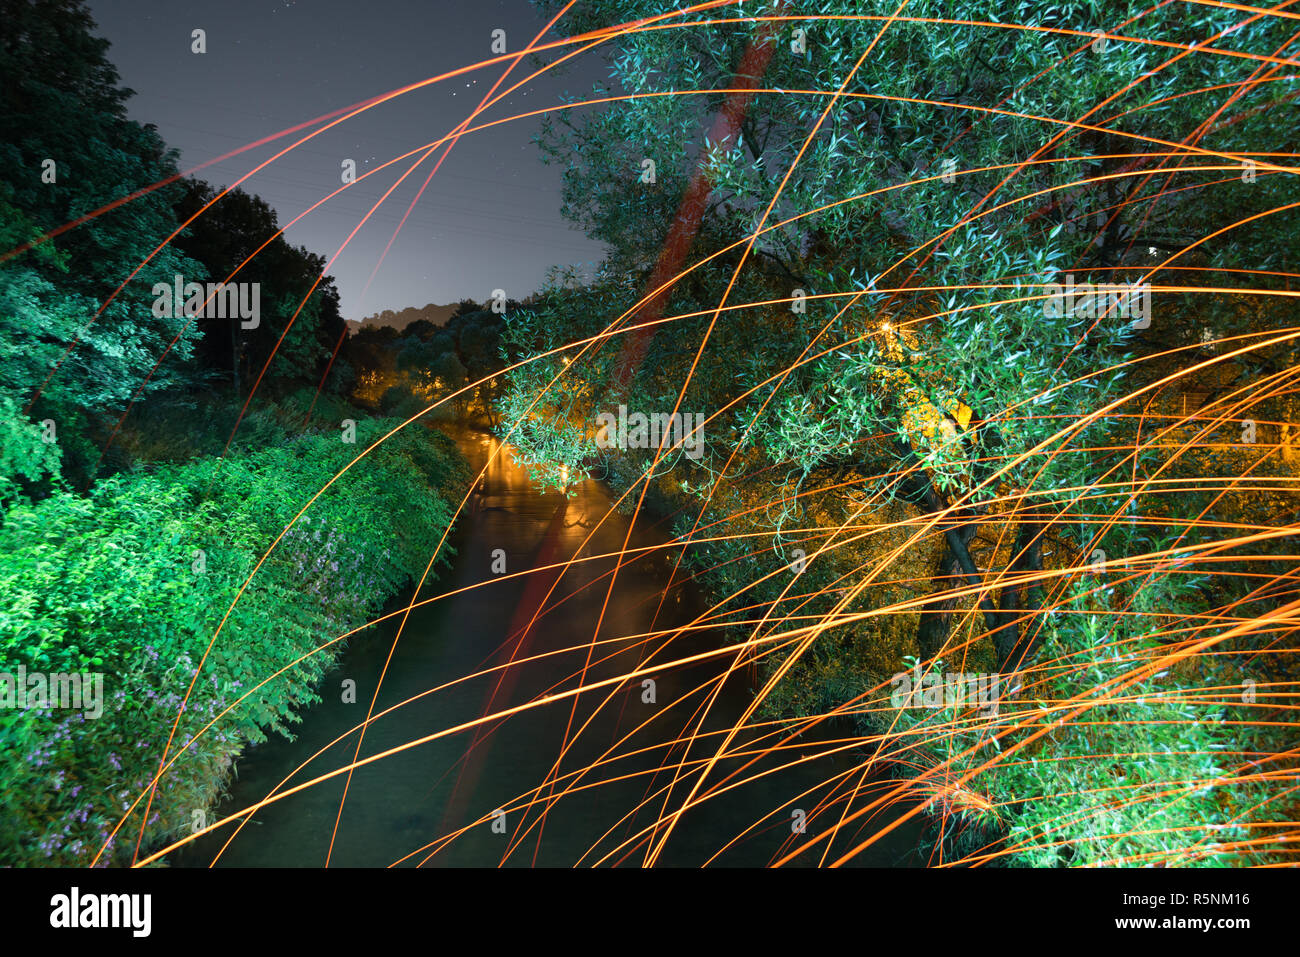 illuminated river with sparks and fire during the summer - Stock Image